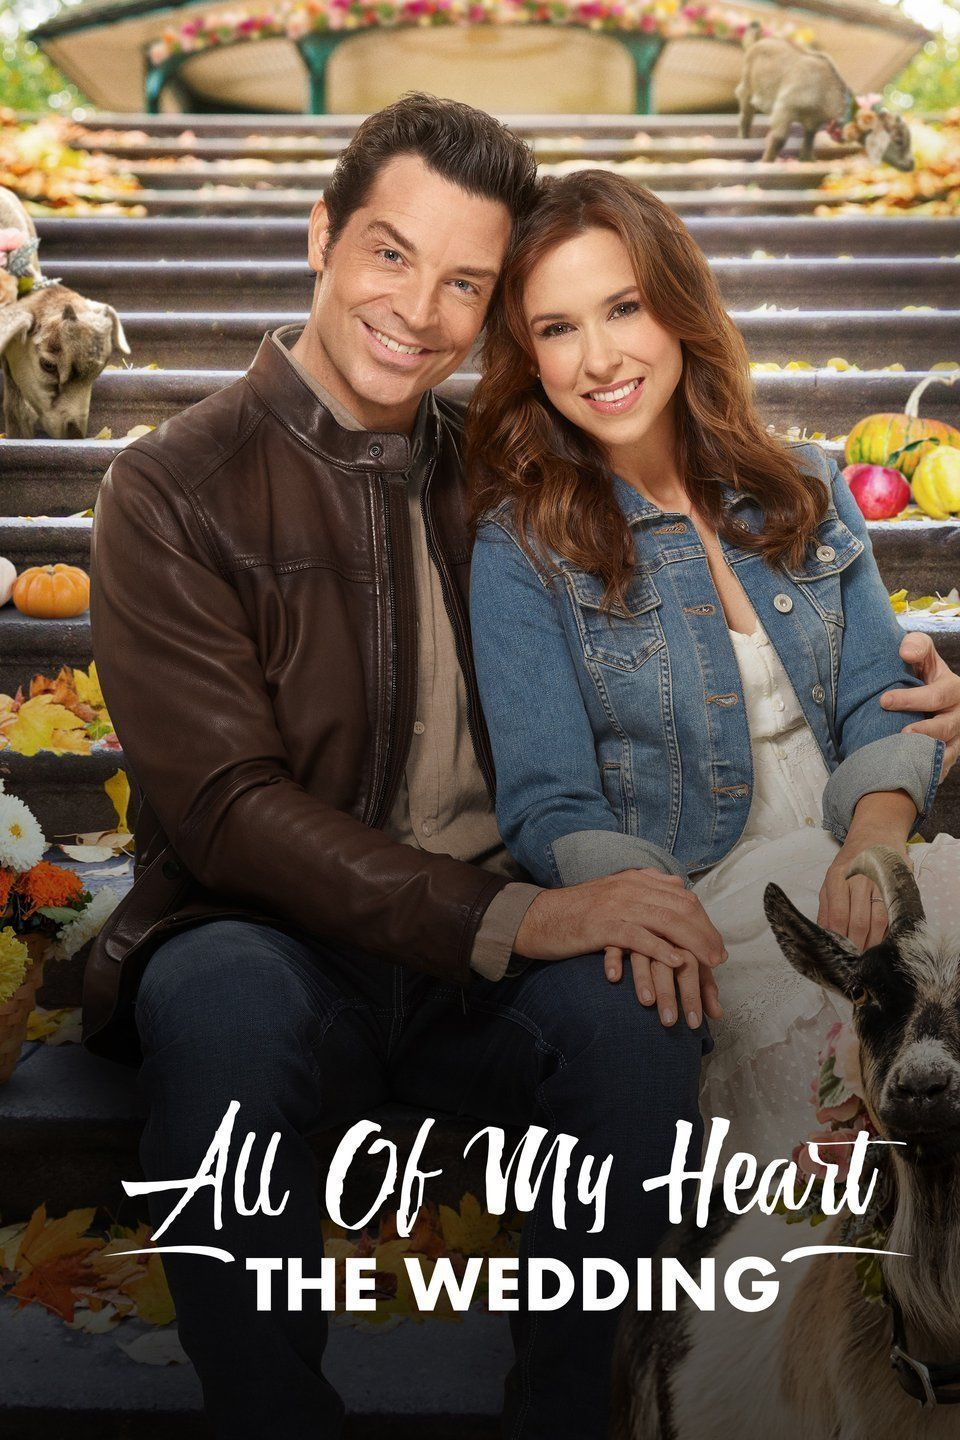 Autumn 201813 All of My Heart The Wedding (2018